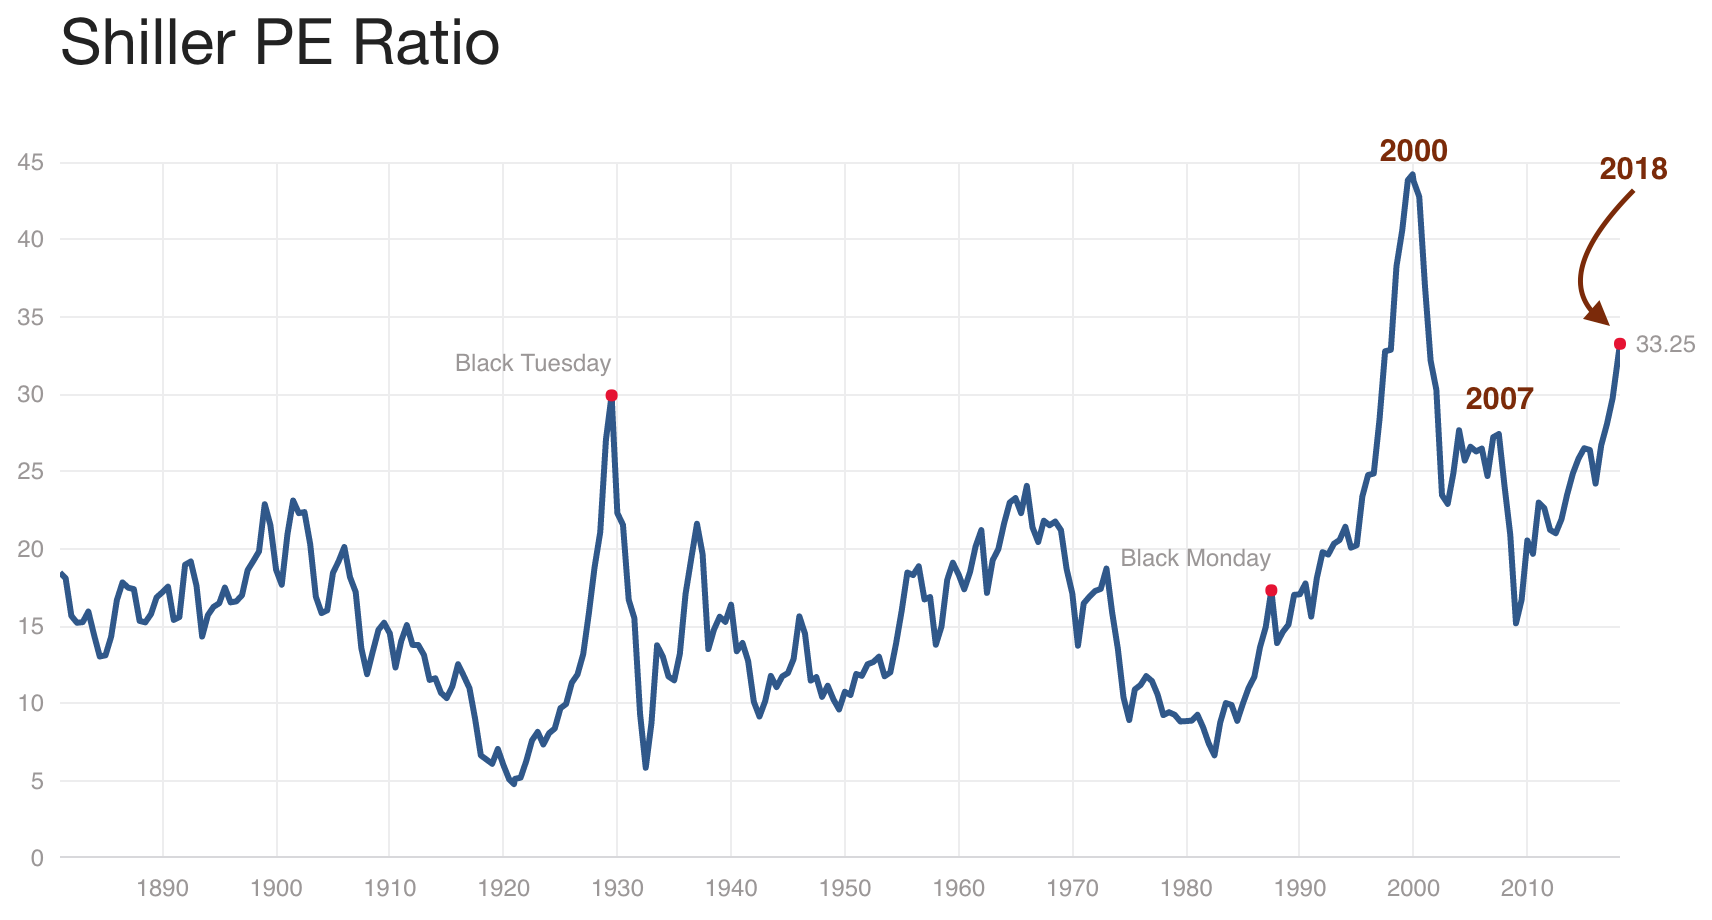 Shiller PE ratio 2018